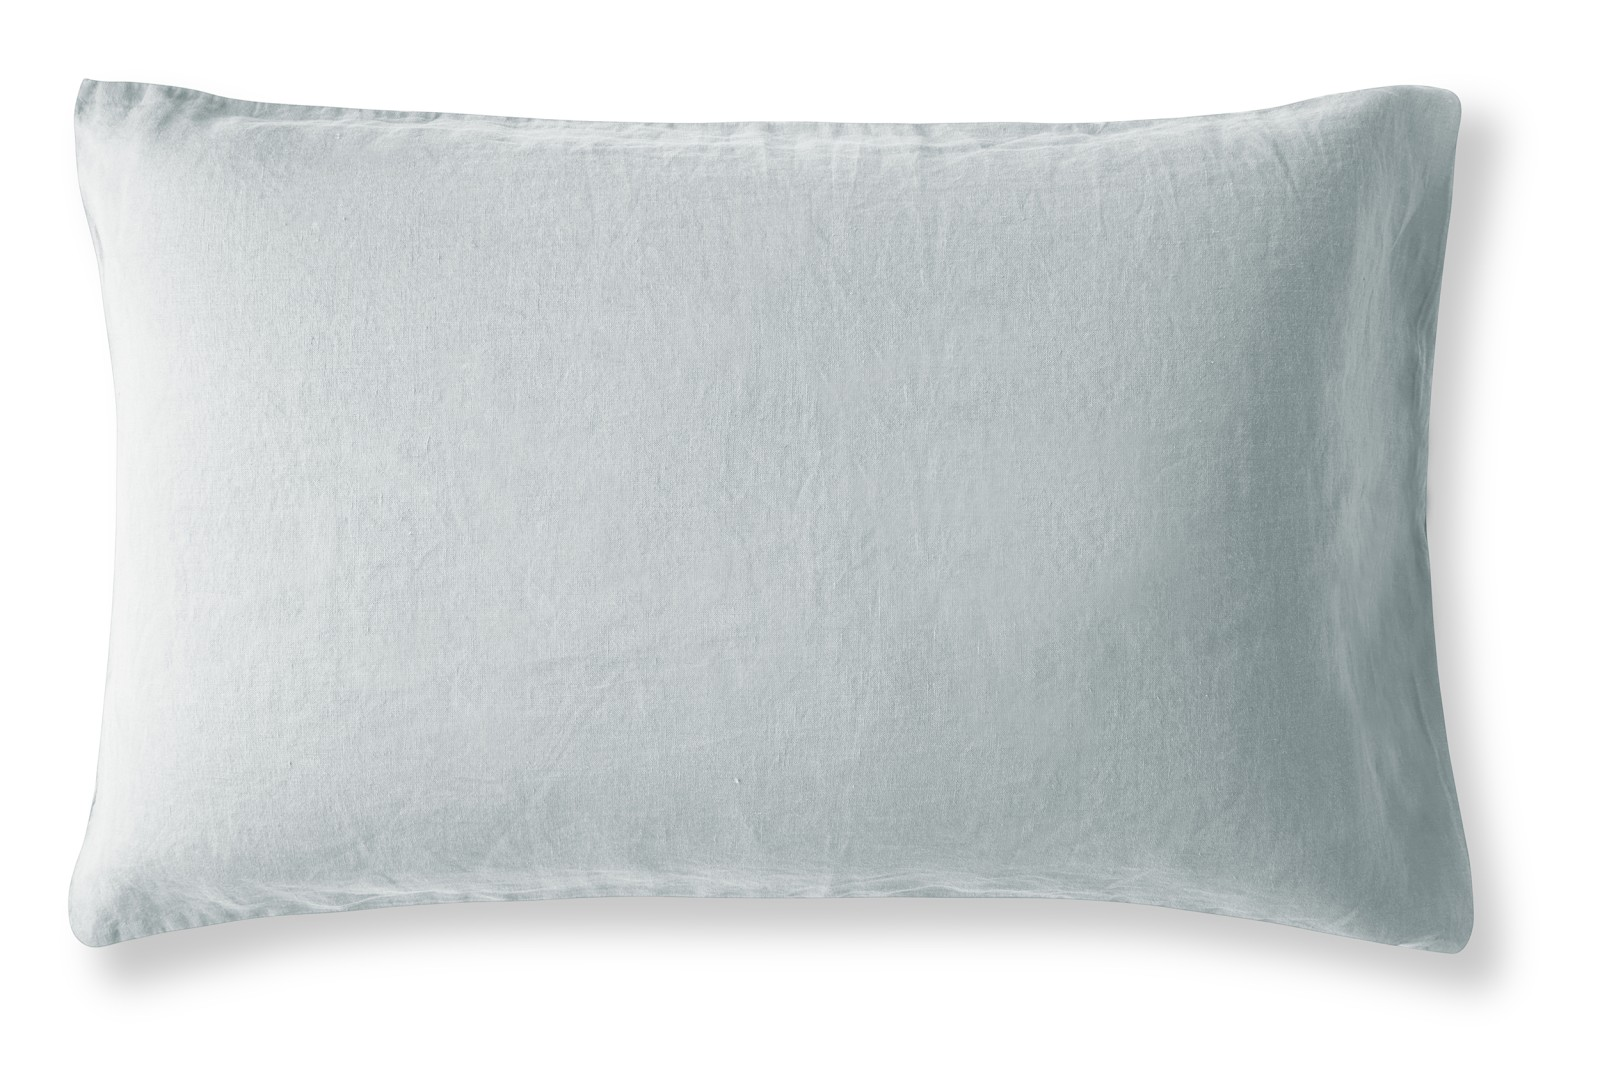 Linen Pillowcase Duck Egg, Housewife